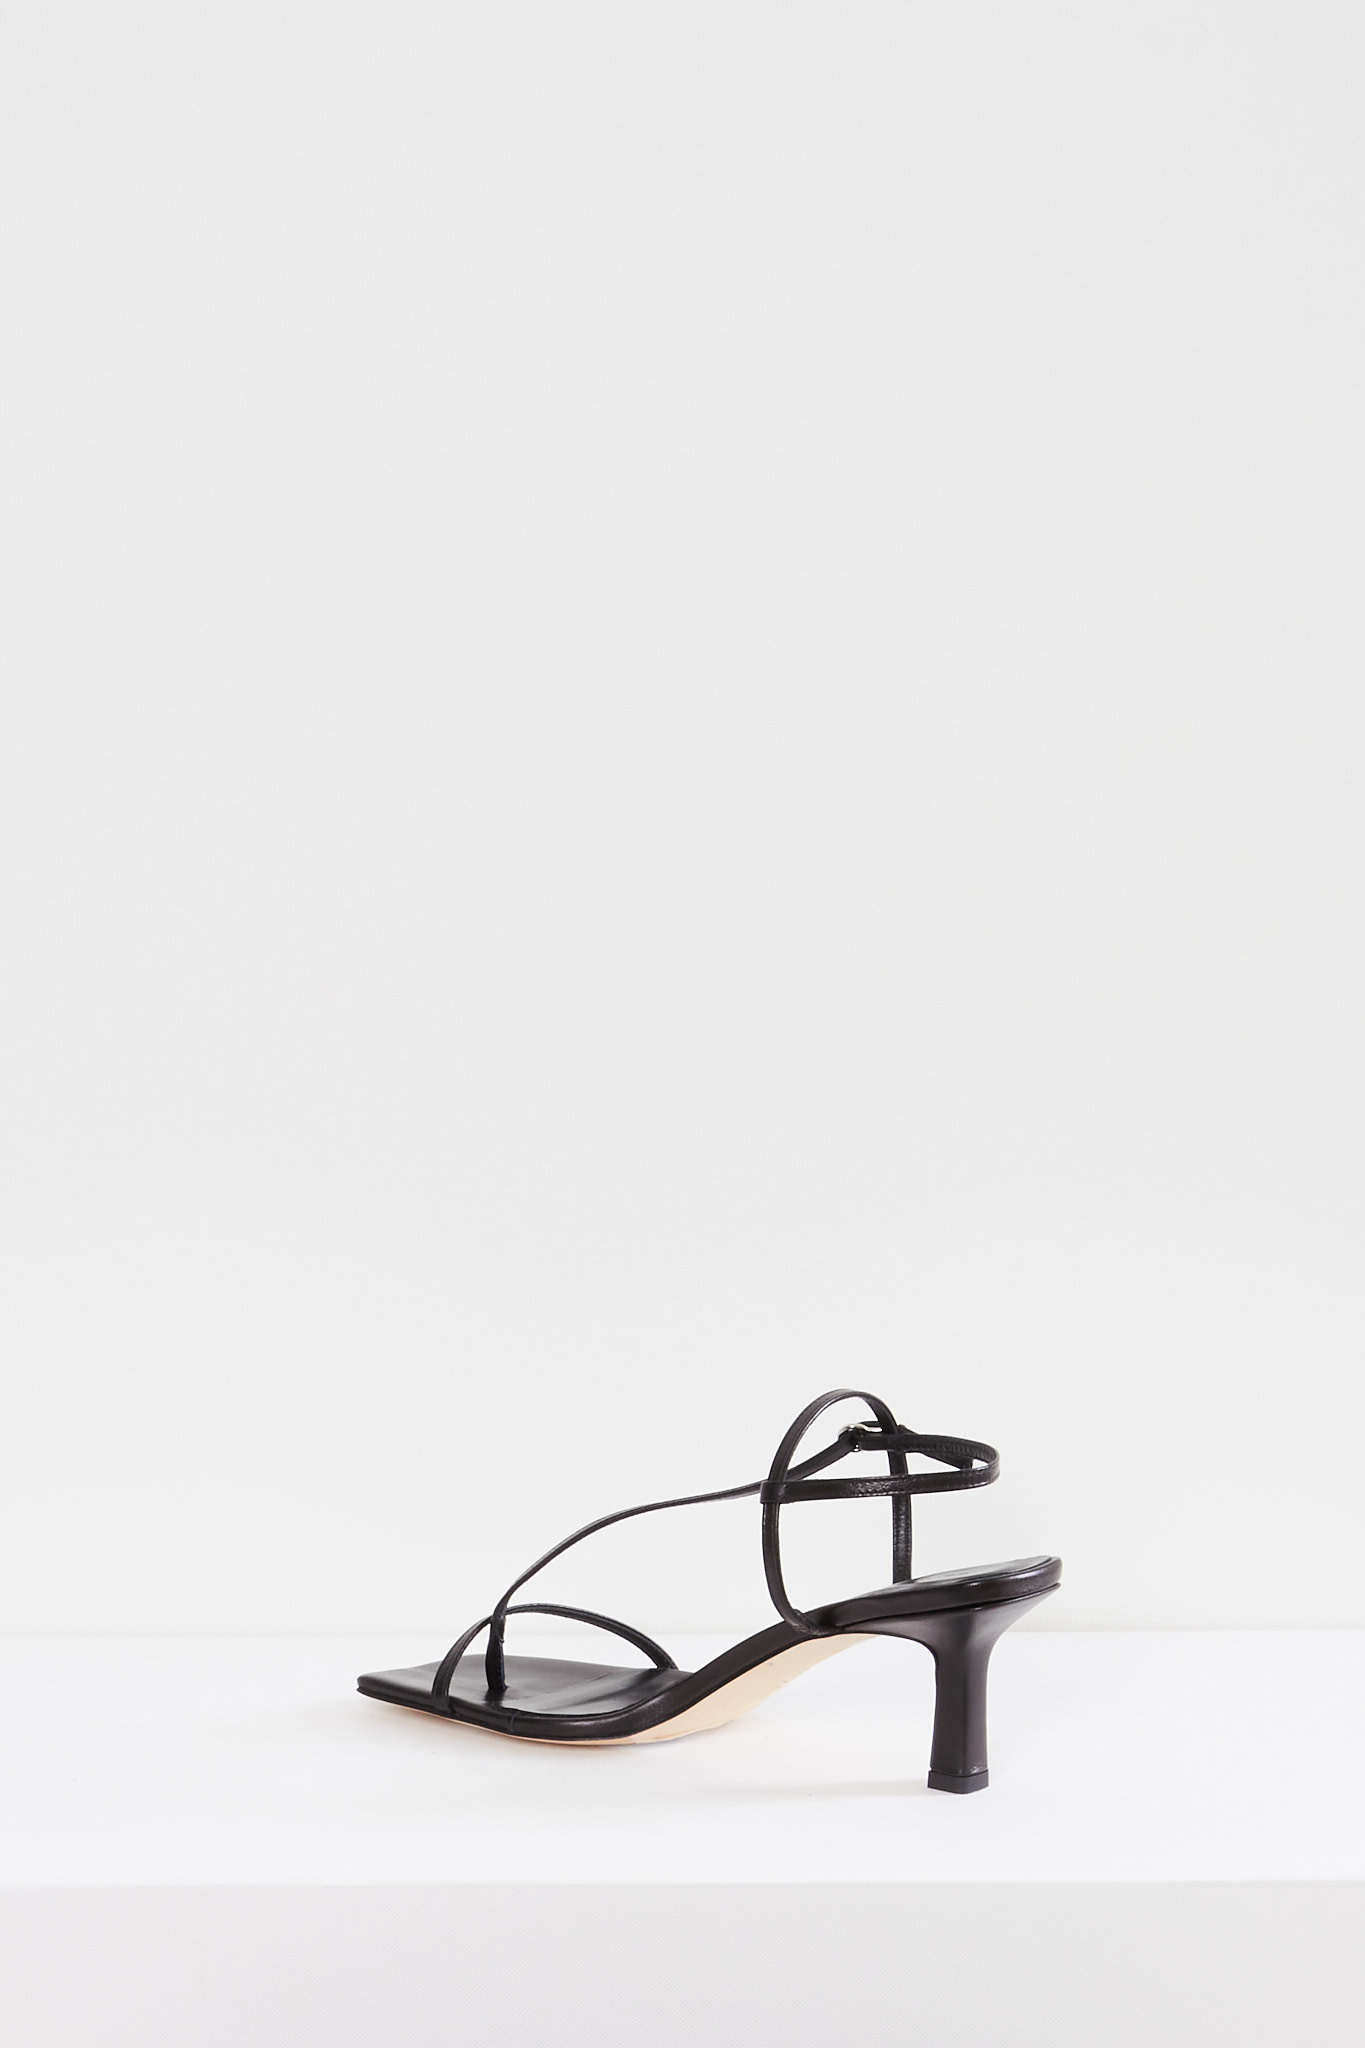 Aeyde - Elise nappa leather sandals